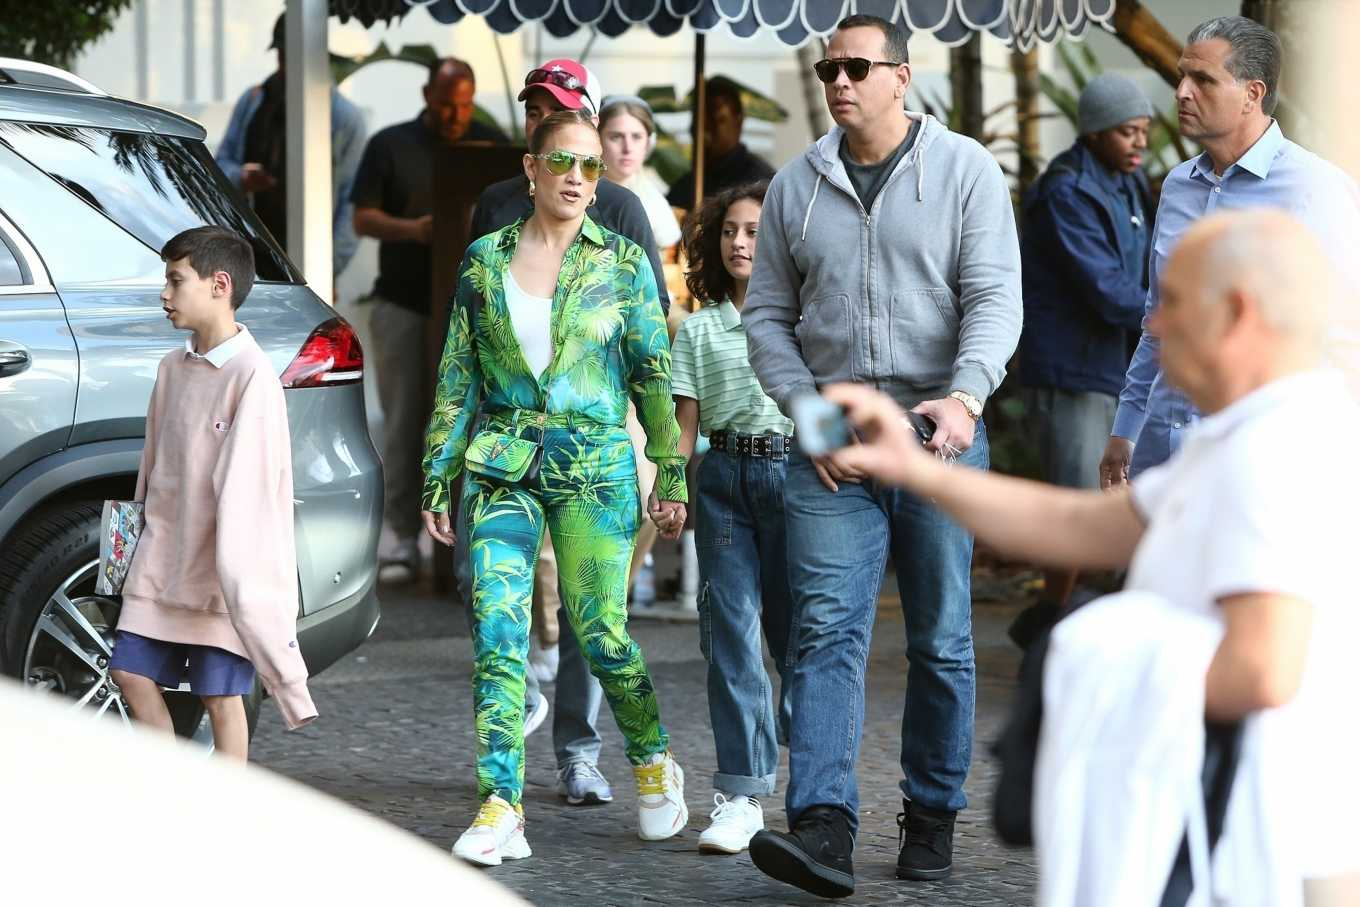 Jennifer Lopez heads out for brunch with family clad in tropical Versace separates in Miami